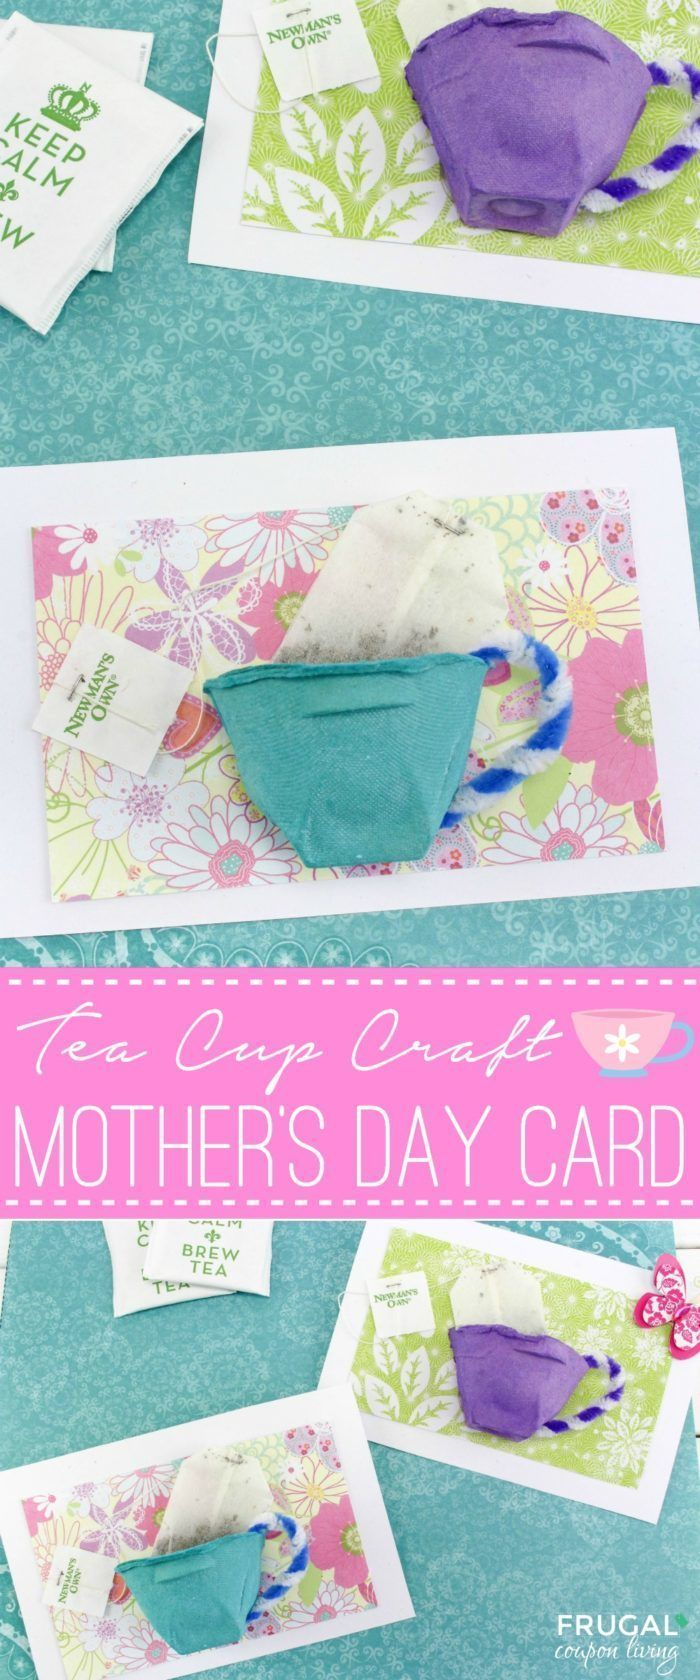 Handmade motherus day card cards pinterest craft and cards